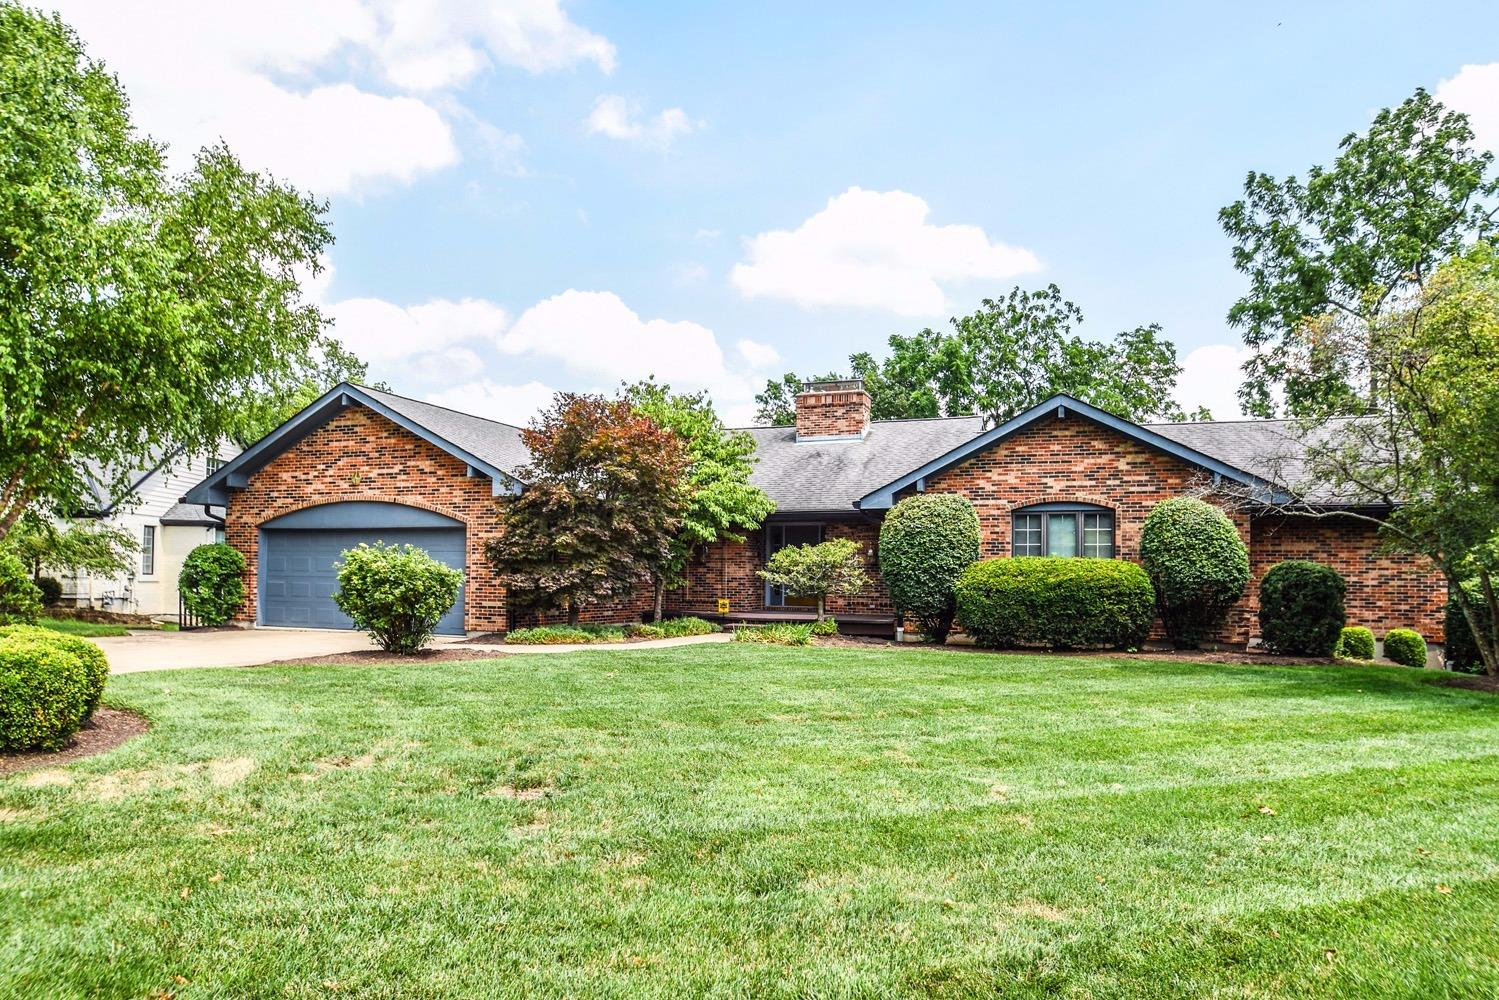 8484 Eagleridge Drive, West Chester, OH 45069